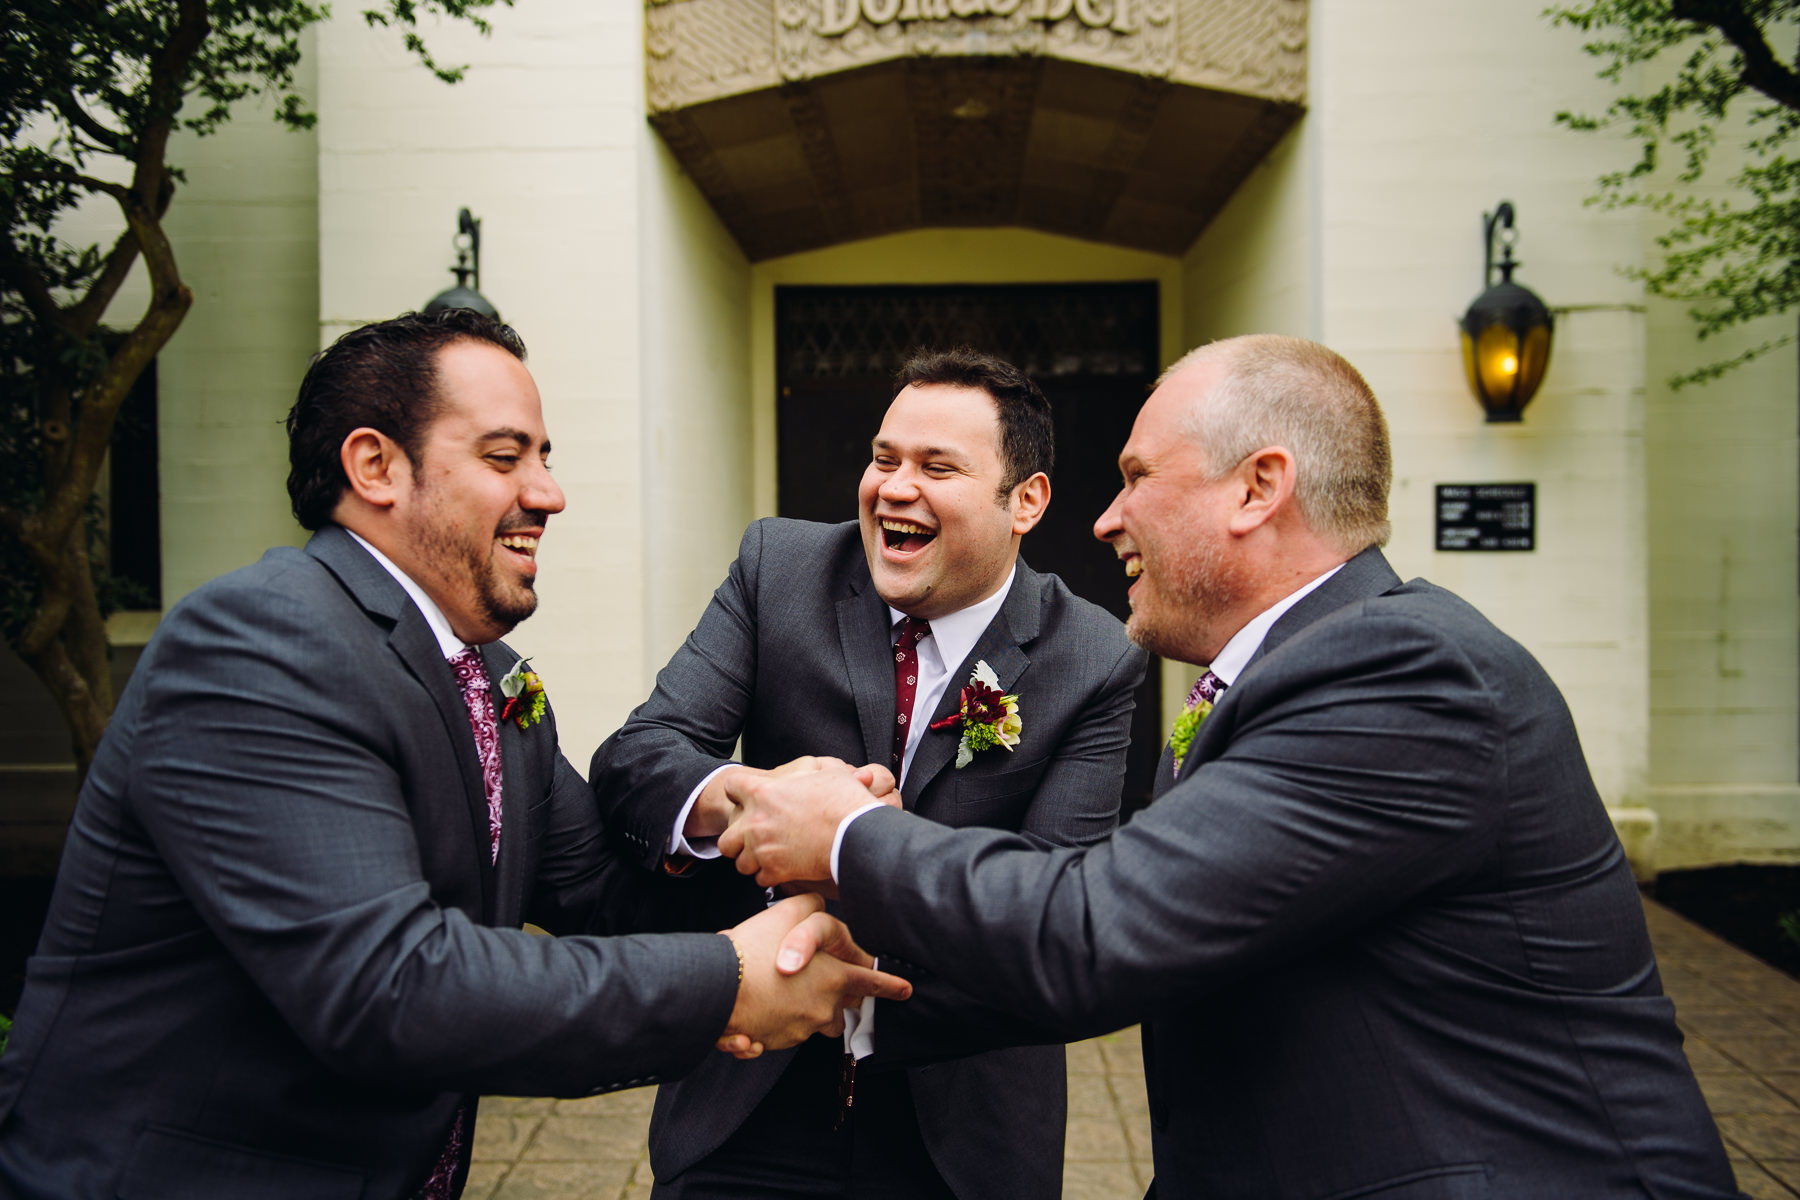 St. Joseph Catholic Church groomsmen moment